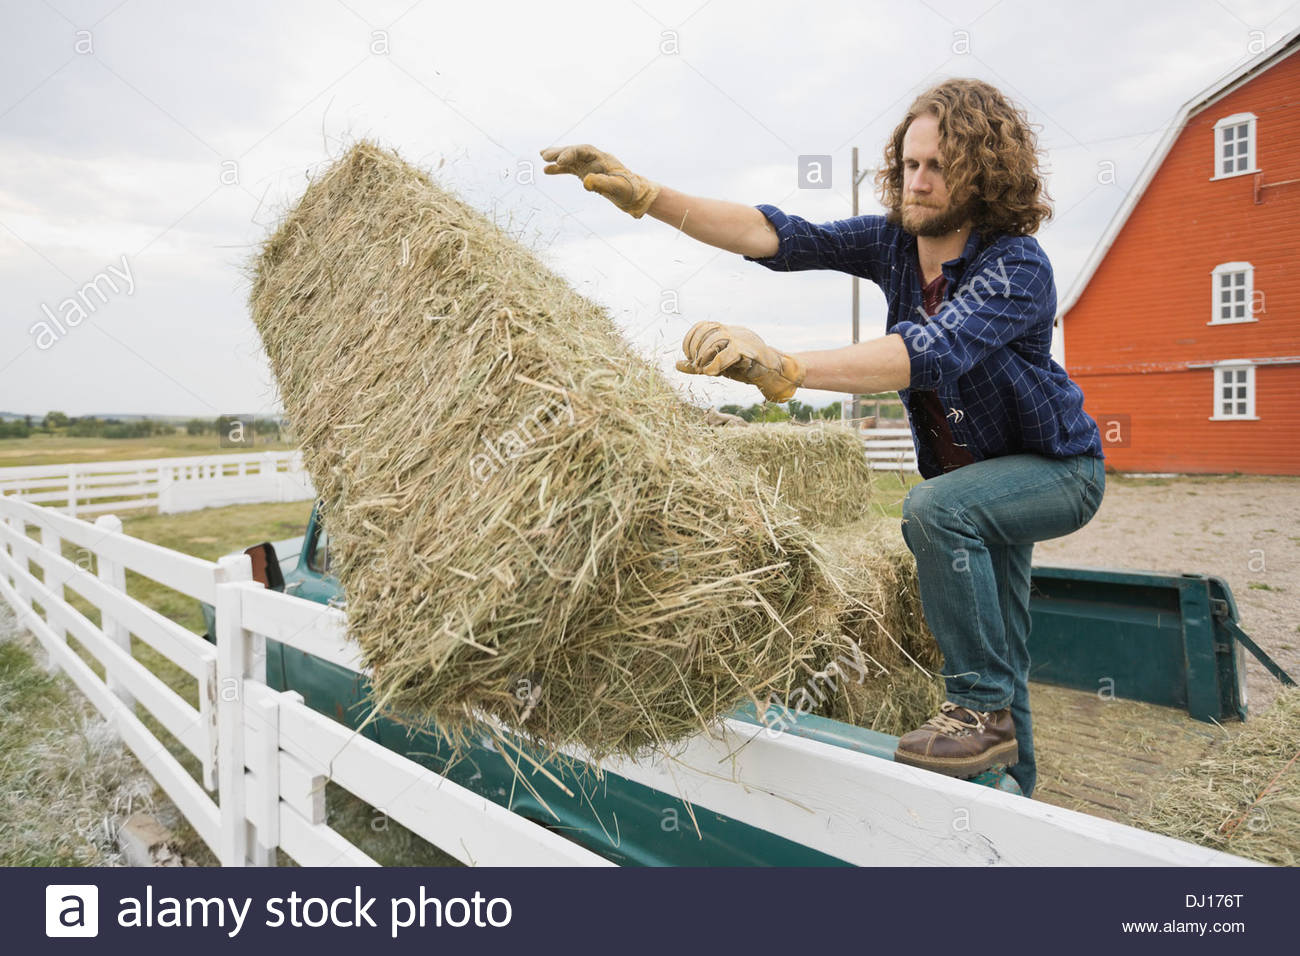 Man unloading hay bale from pick-up truck - Stock Image